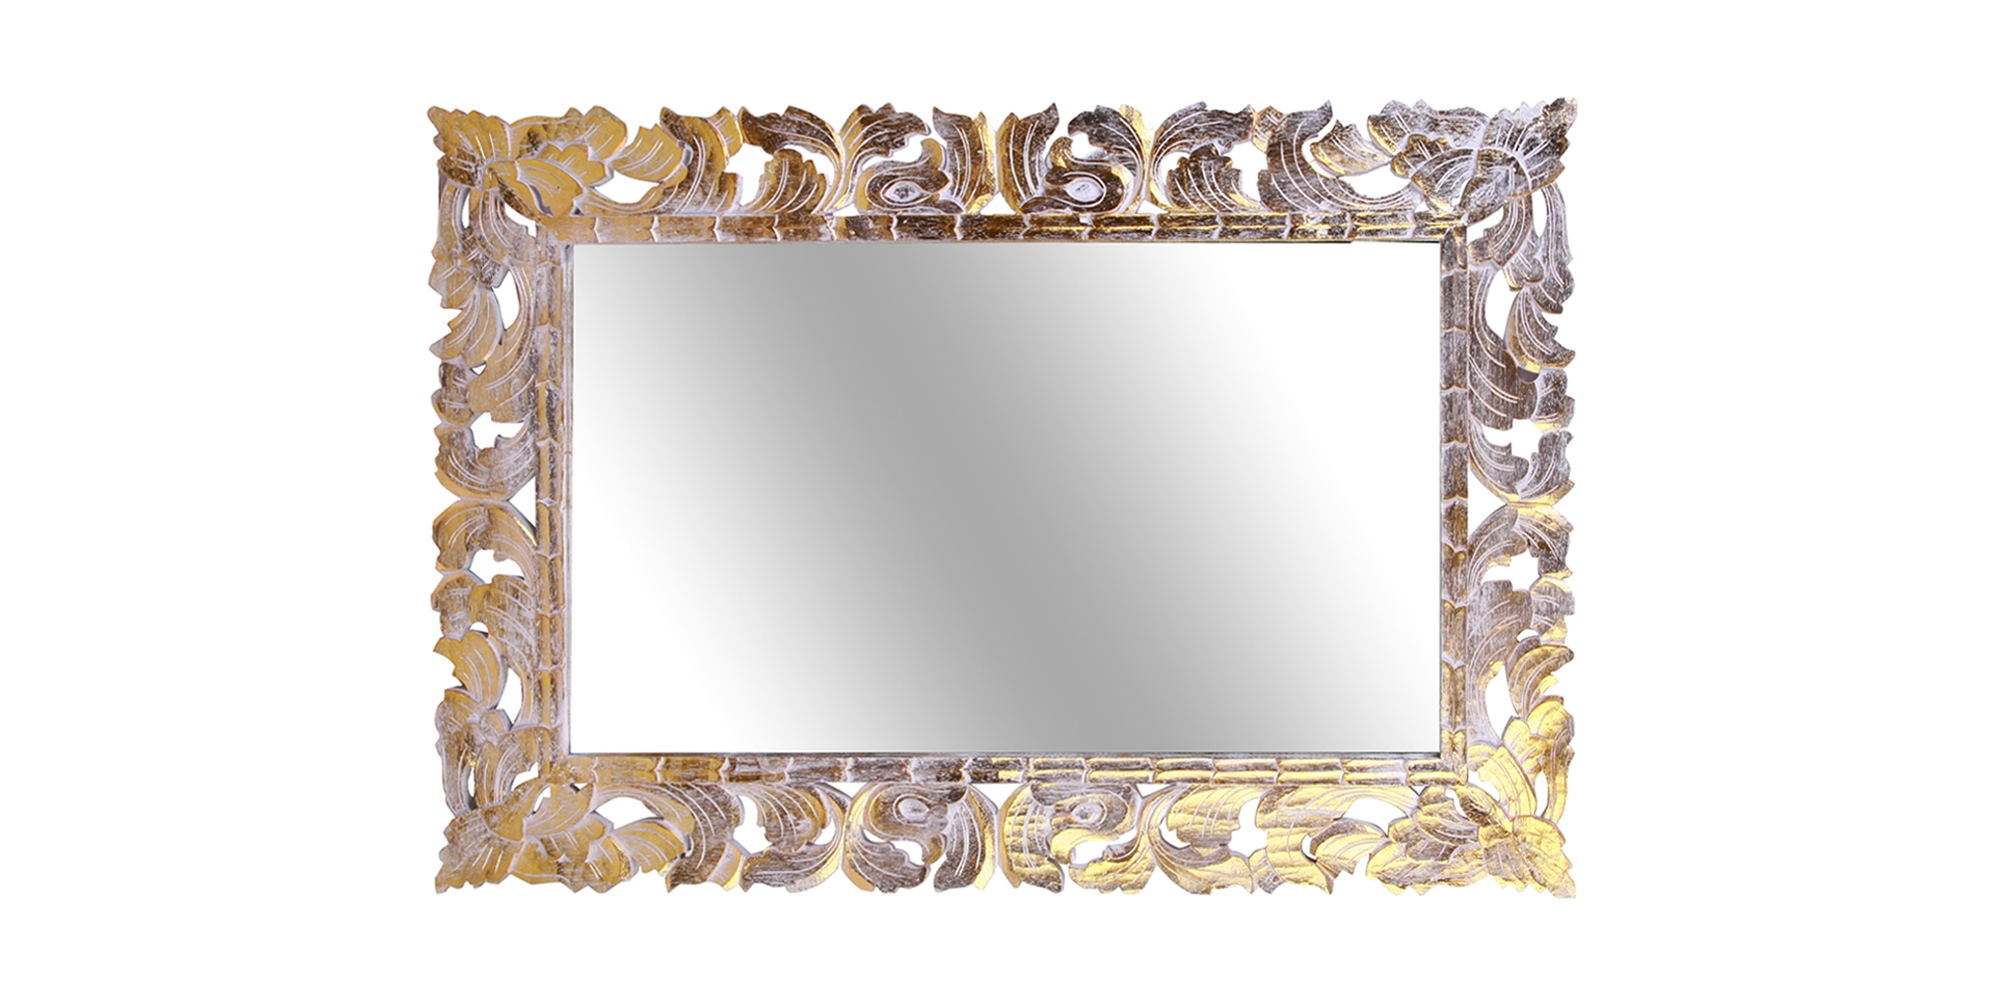 Omnia Craft Bali Rectangular Gilded Mirror Intended For Gilded Mirror (View 13 of 15)